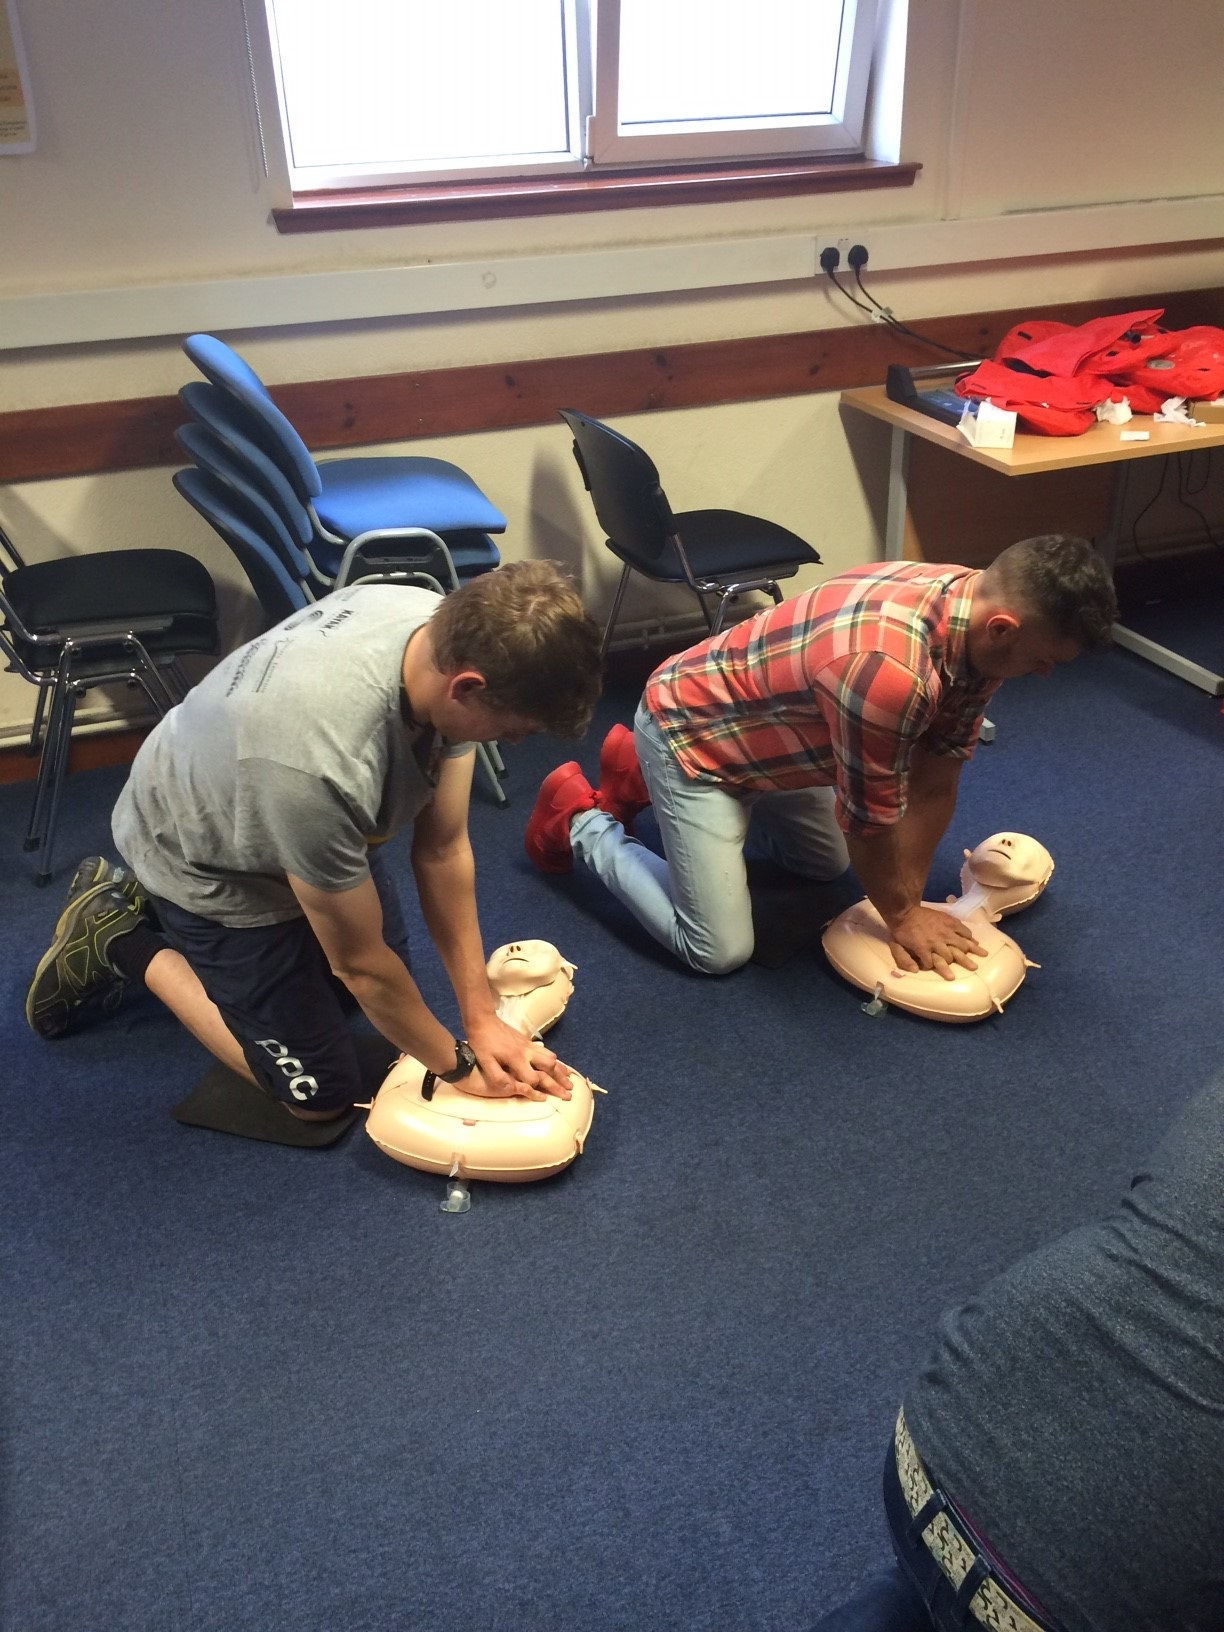 Potential new recruits jump at chance to learn life-saving CPR